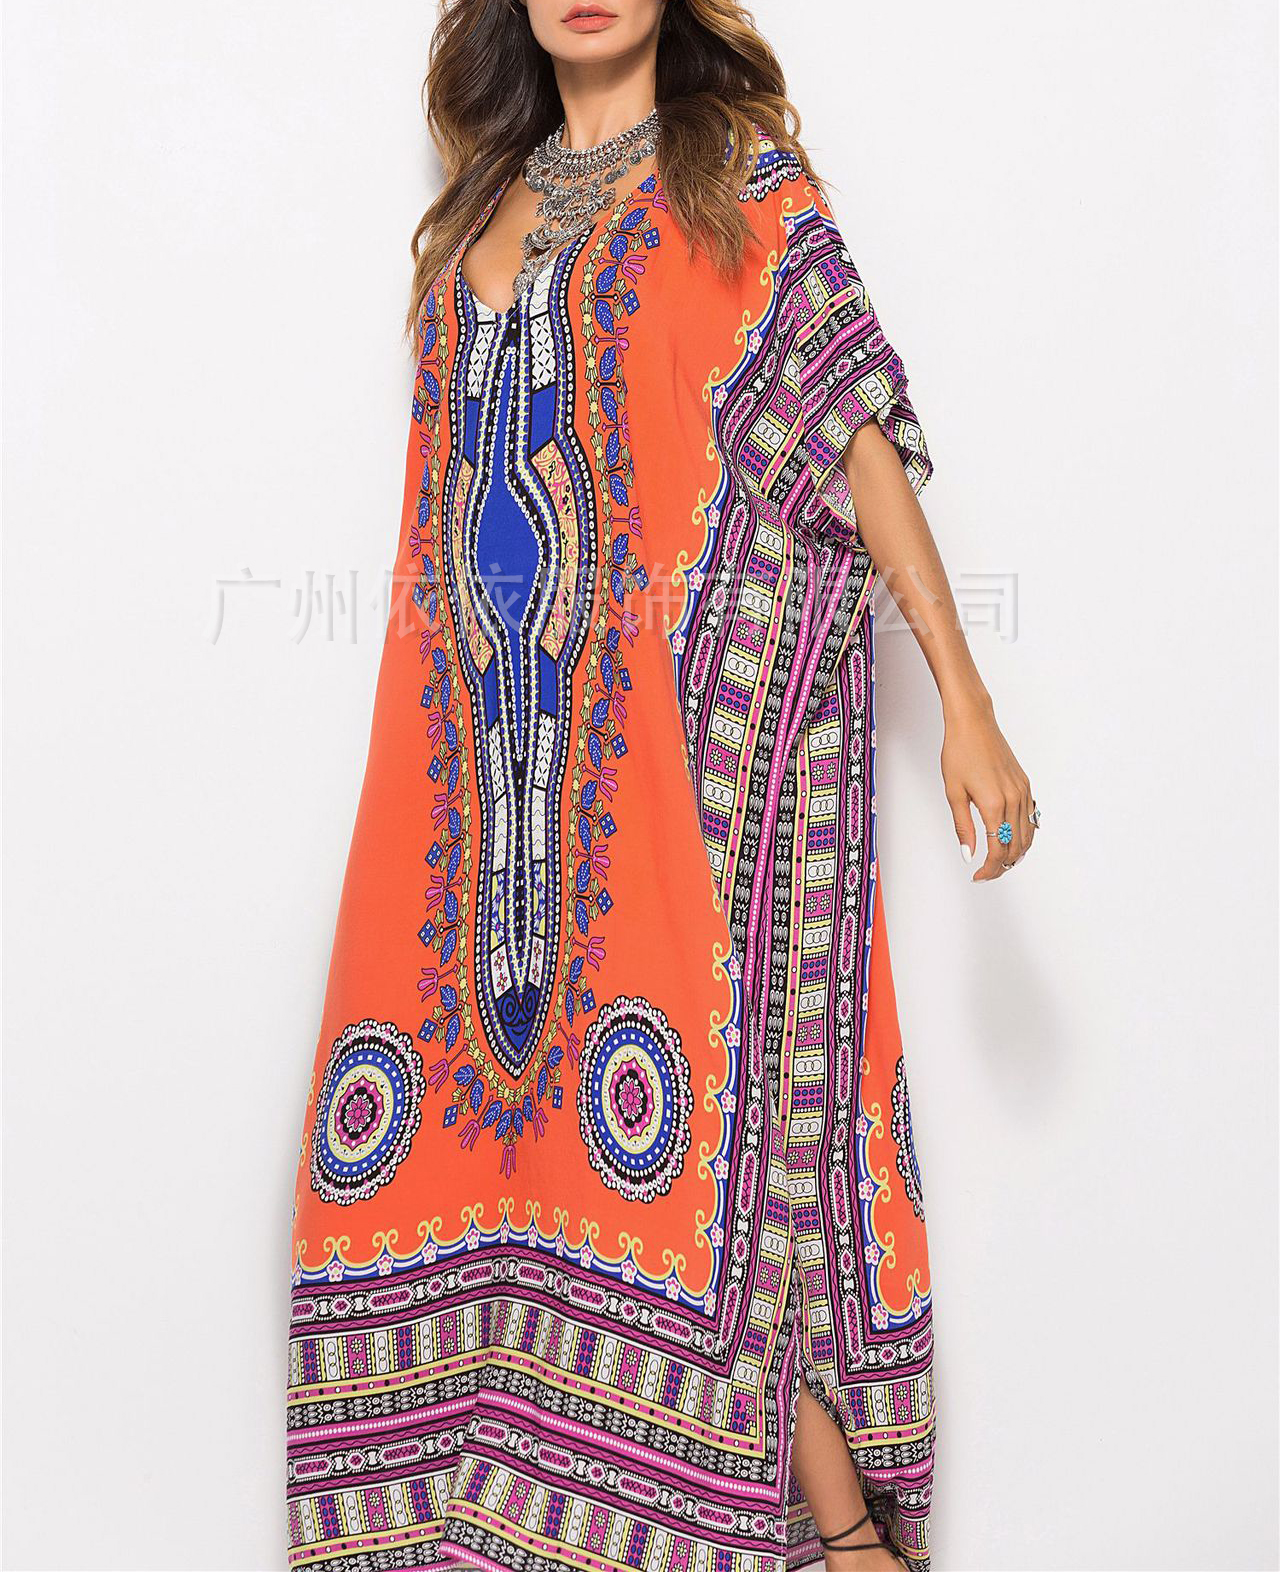 Spring and summer new style Printed casual fashion dress European and American explosions beach dress holiday dress in Dresses from Women 39 s Clothing